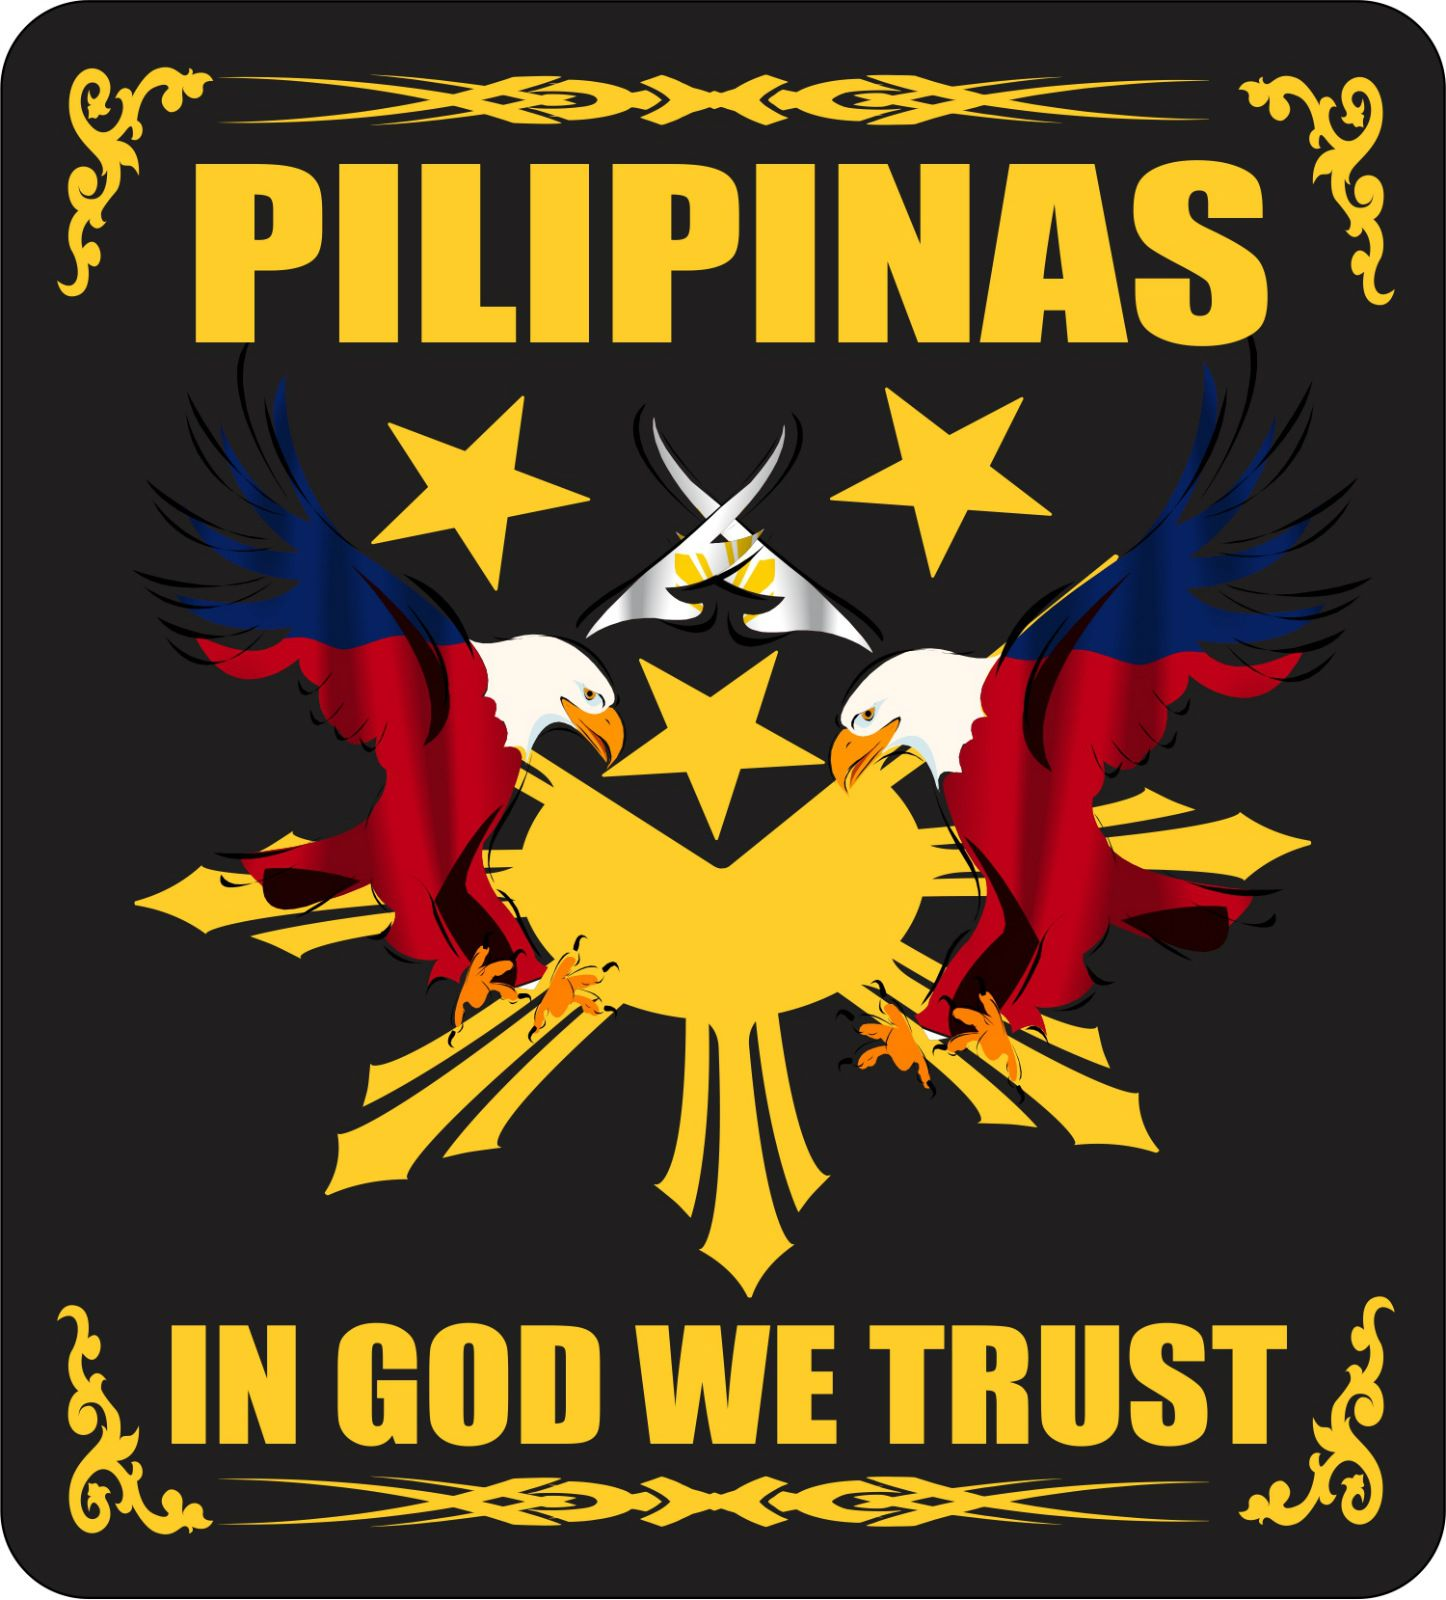 Philippines Flag Meaning Pilipinas In God We trust